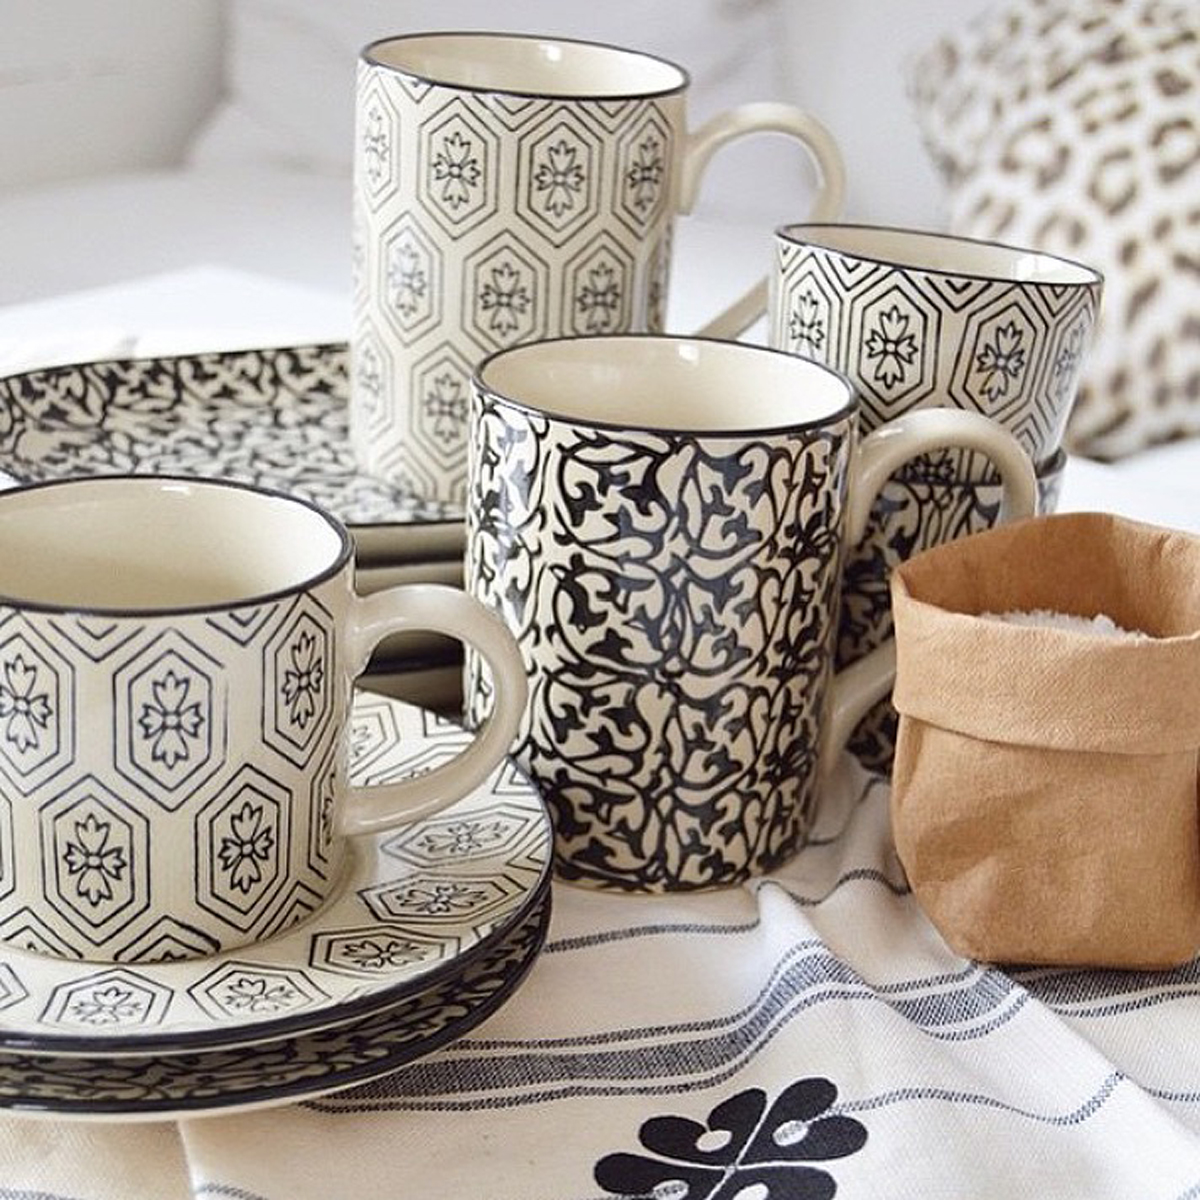 Day-Home-mugs-&-oval-plates-lifestyle-shot